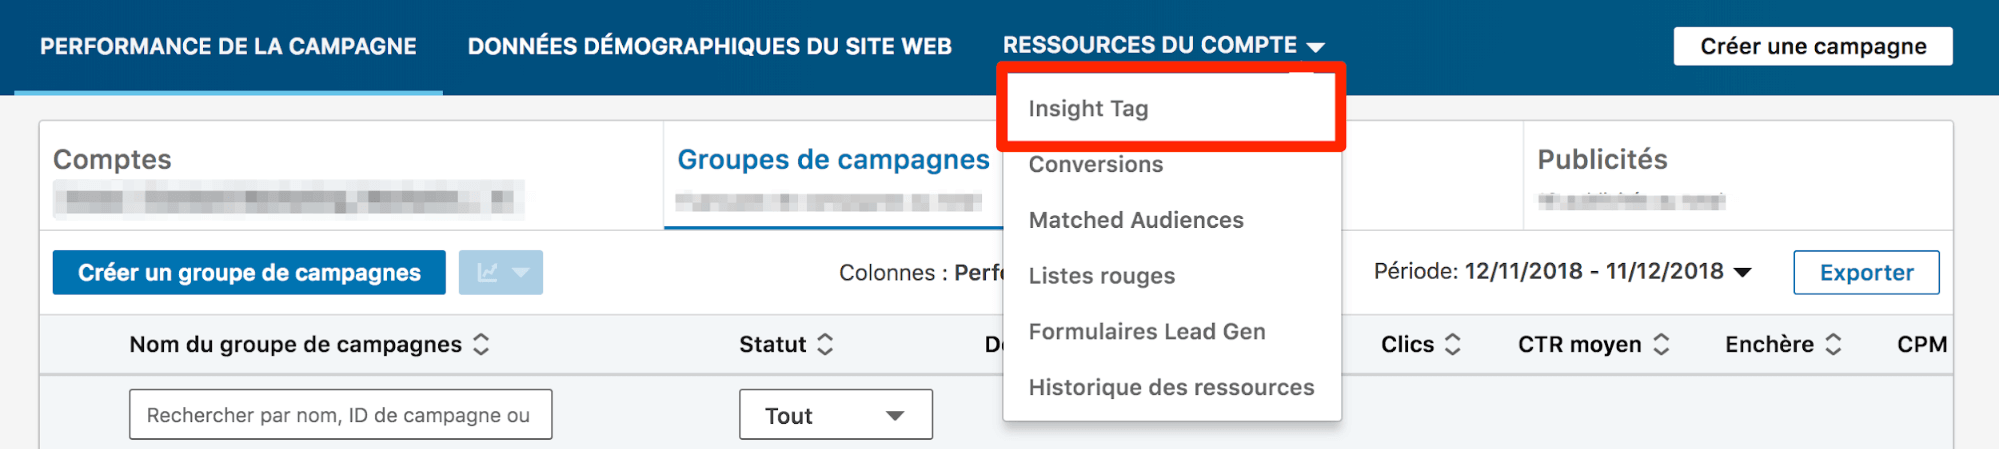 demand generation avec LinkedIn insight tag